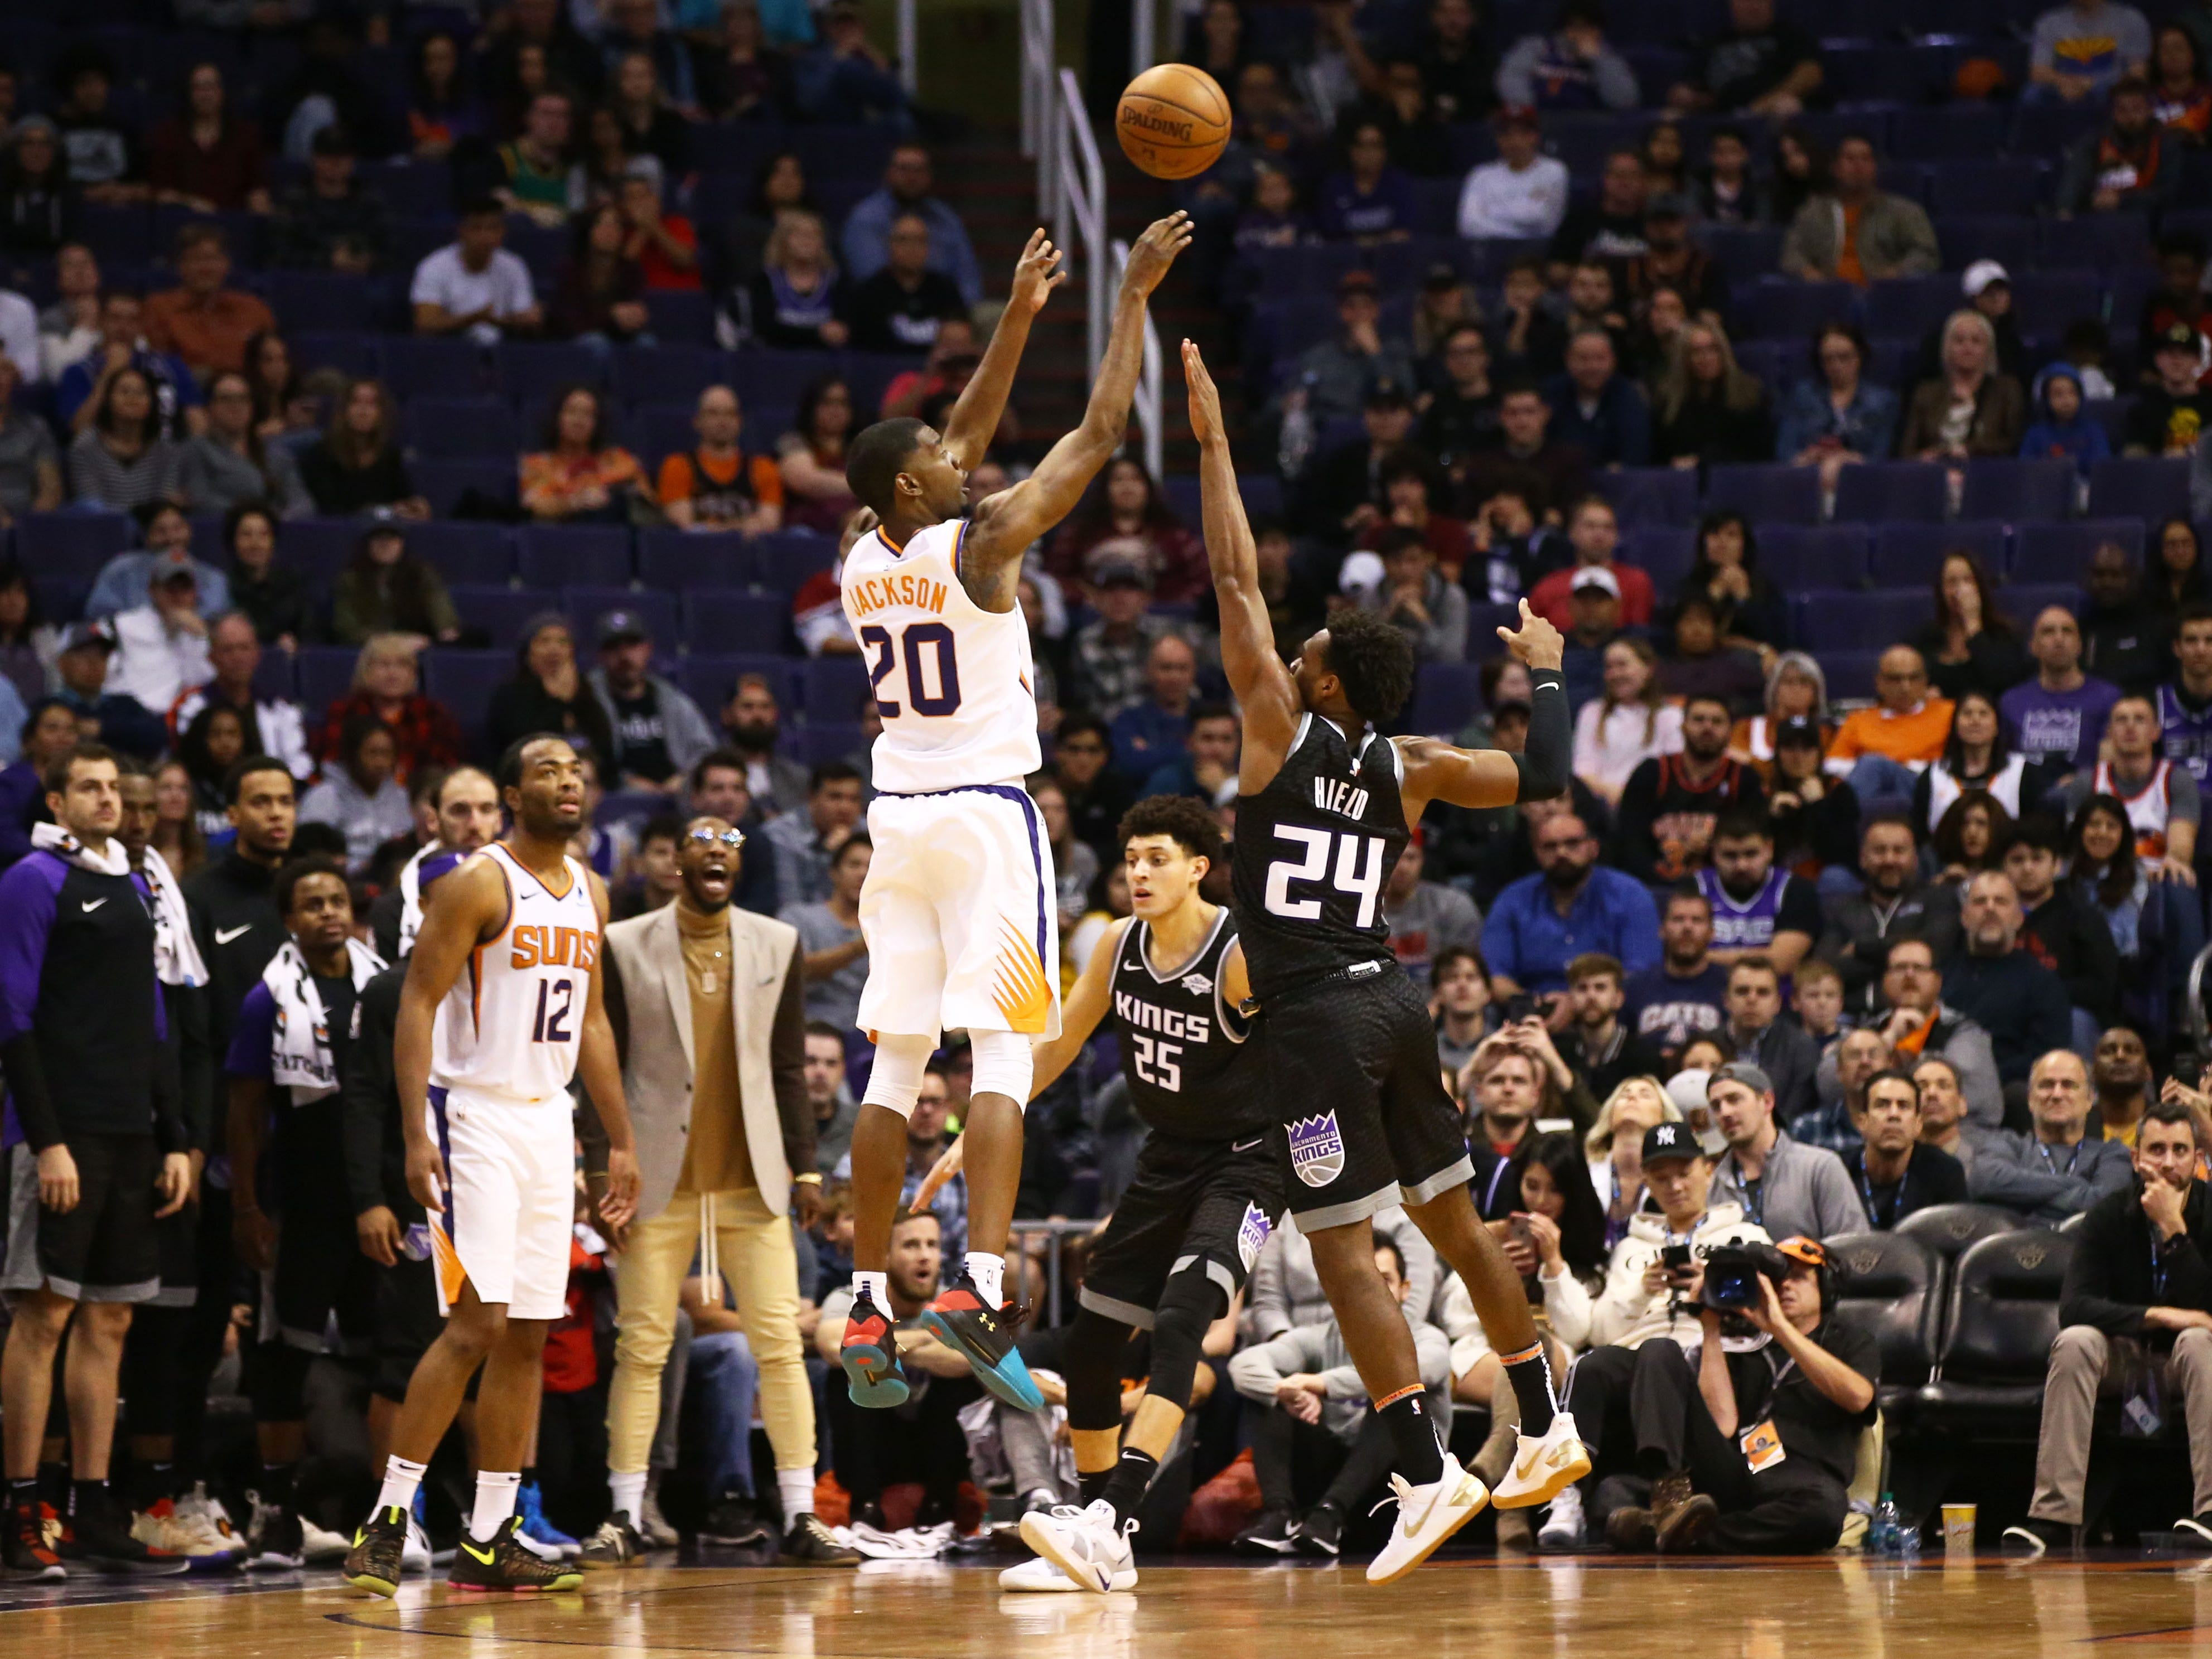 Phoenix Suns forward Josh Jackson makes a basket against the Sacramento Kings in the second half on Jan. 8 at Talking Stick Resort Arena.